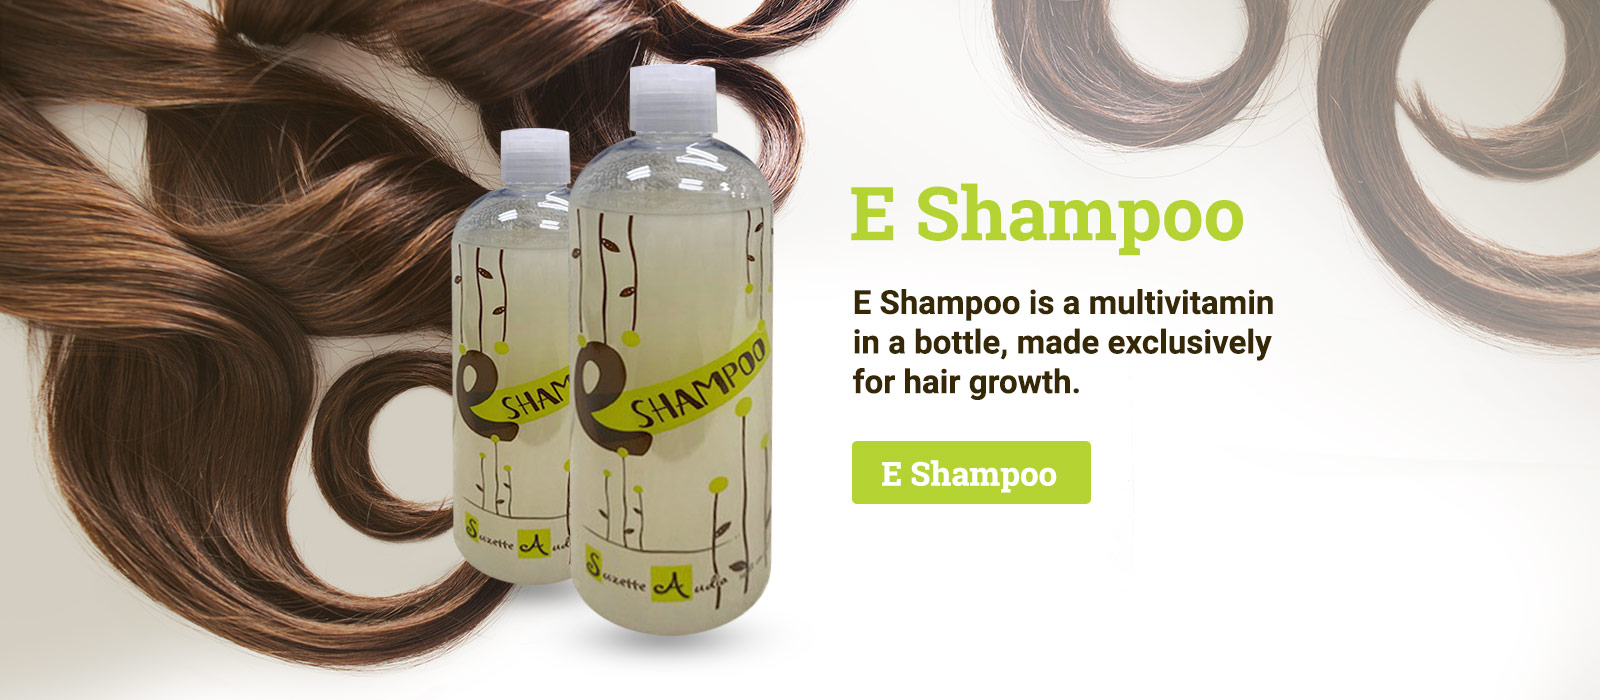 E Shampoo - E Products for Hair Growth